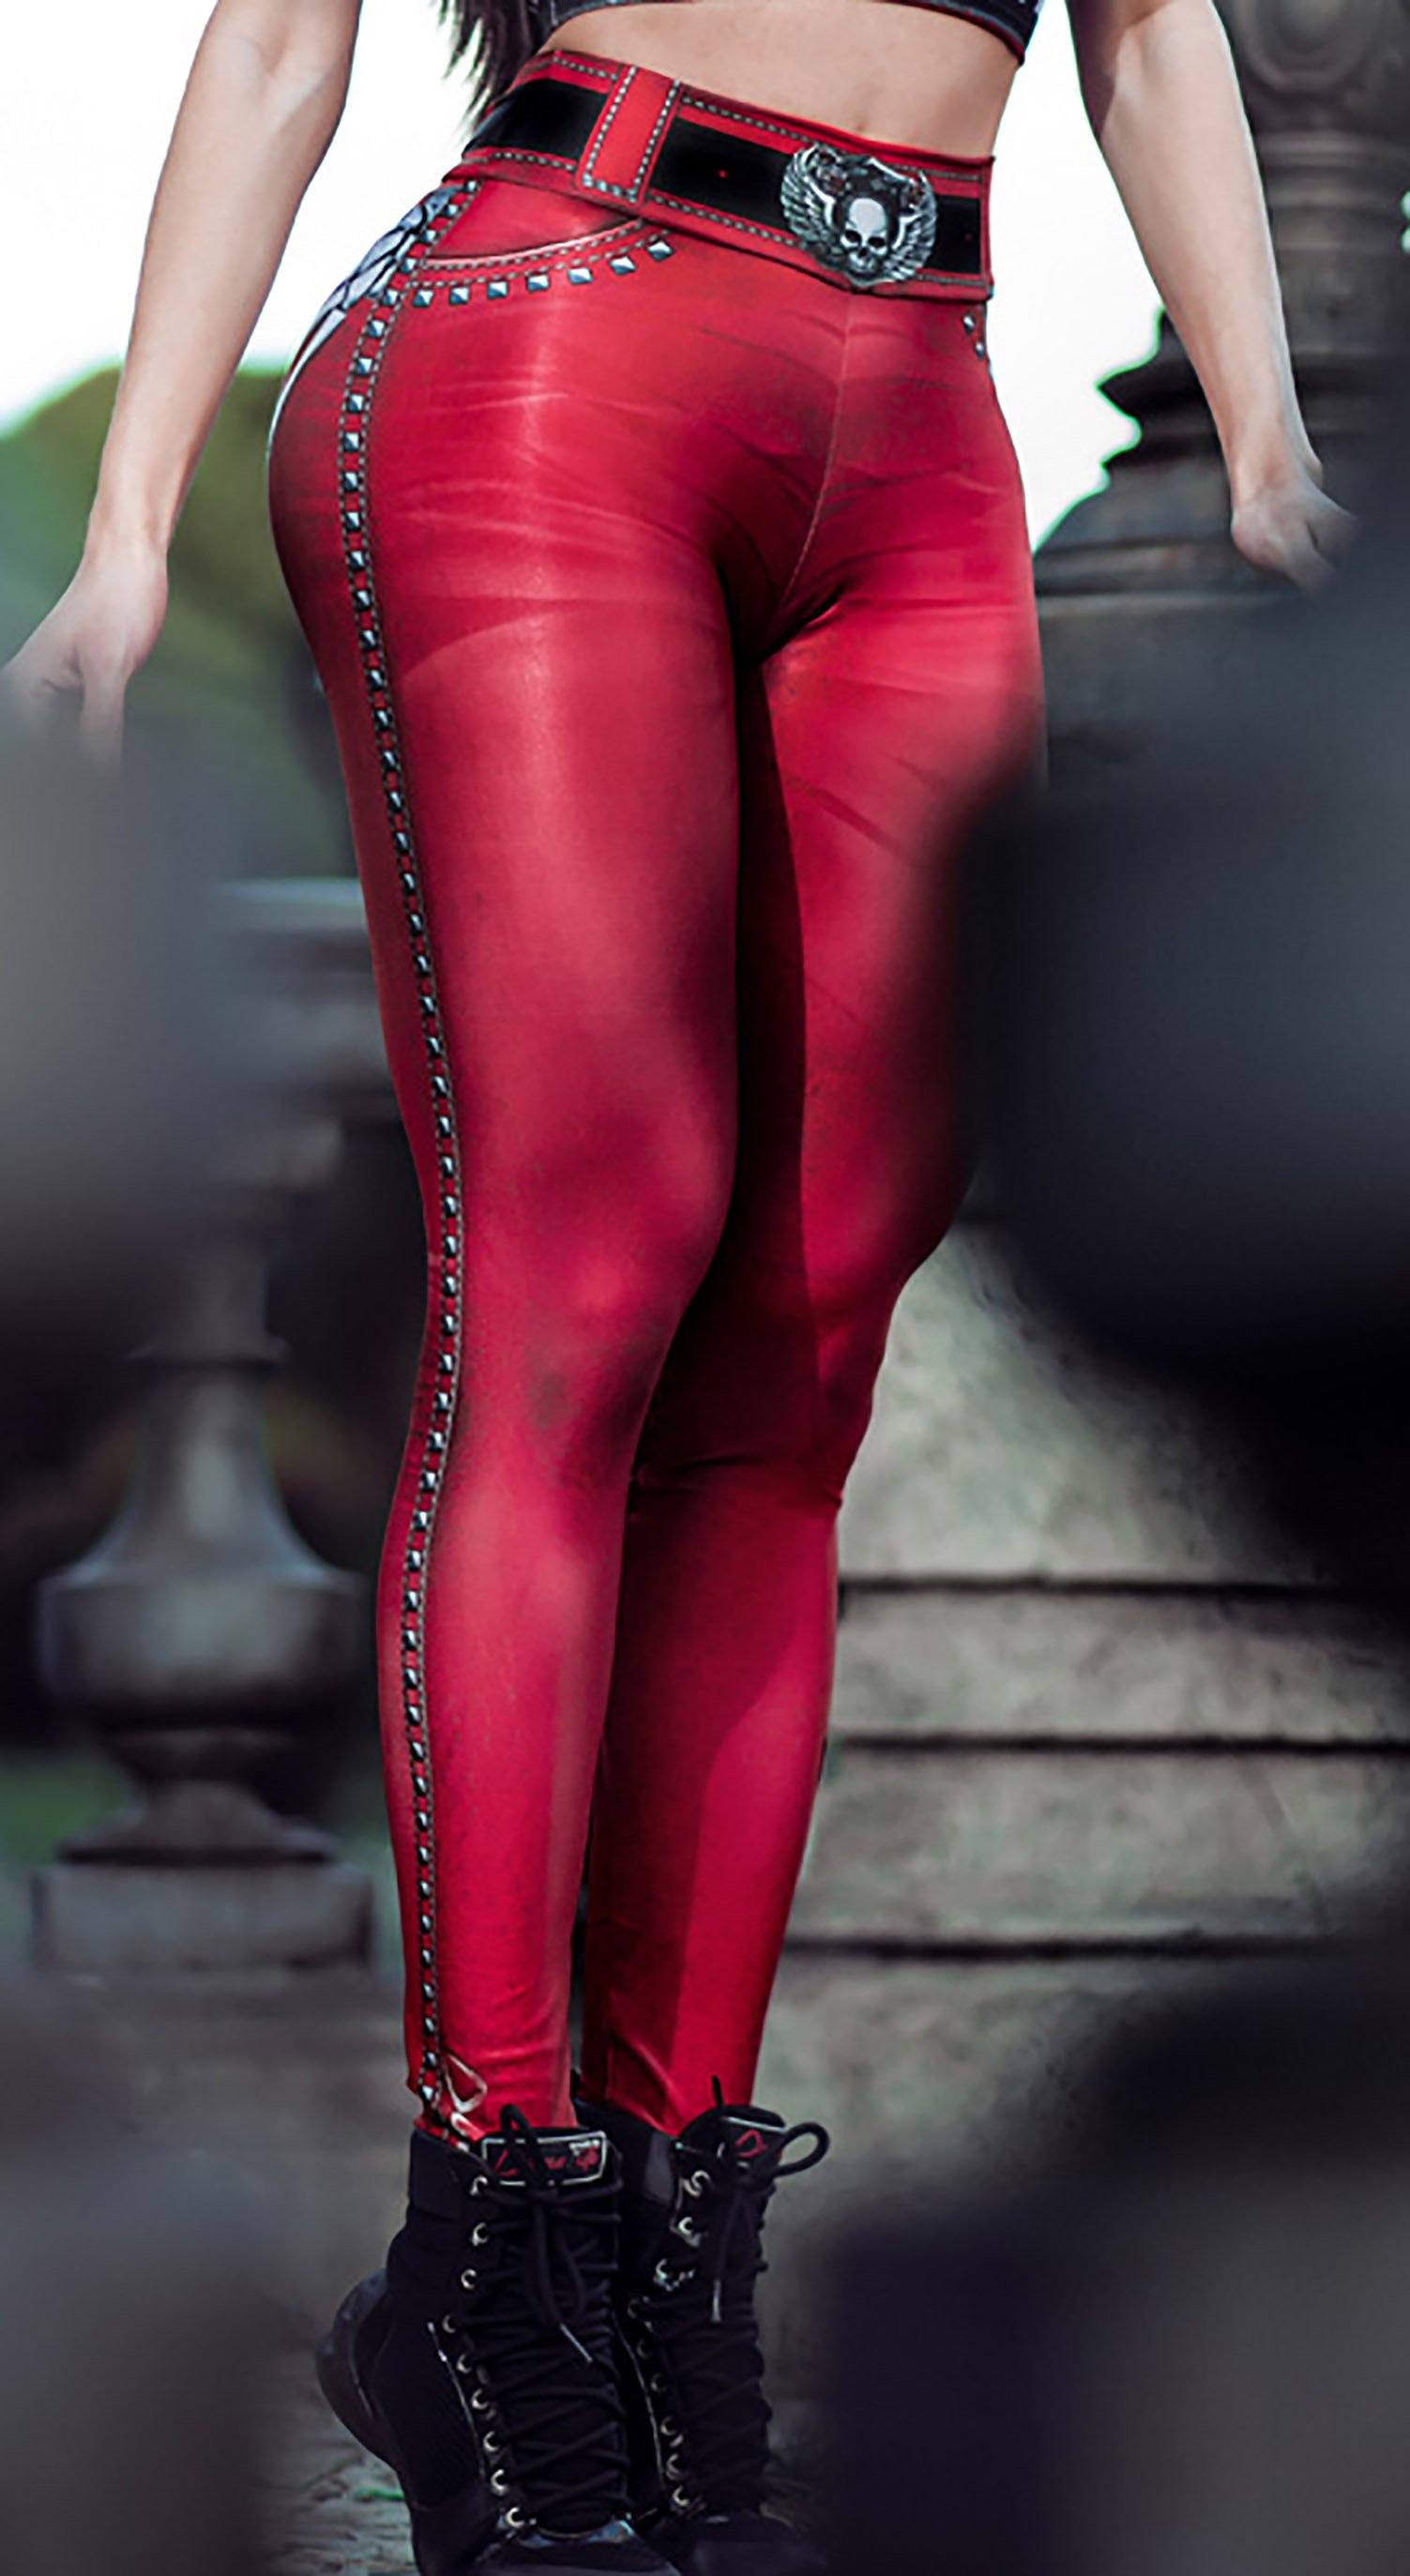 Brazilian Workout Legging -  Naughty Skeleton Red